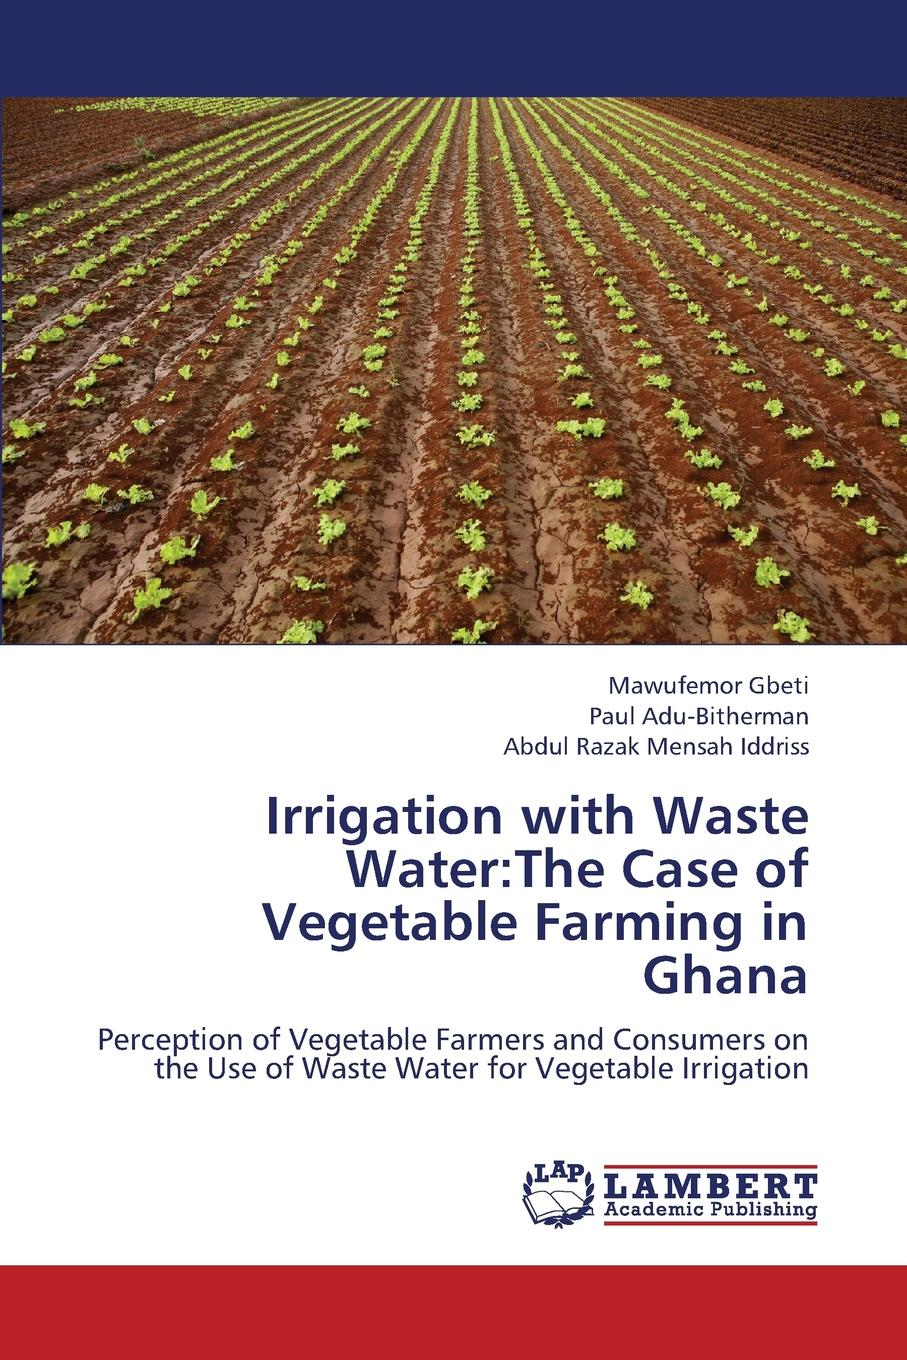 Gbeti Mawufemor, Adu-Bitherman Paul, Iddriss Abdul Razak Mensah Irrigation with Waste Water. The Case of Vegetable Farming in Ghana mj hammer hammer water and waste–water technology